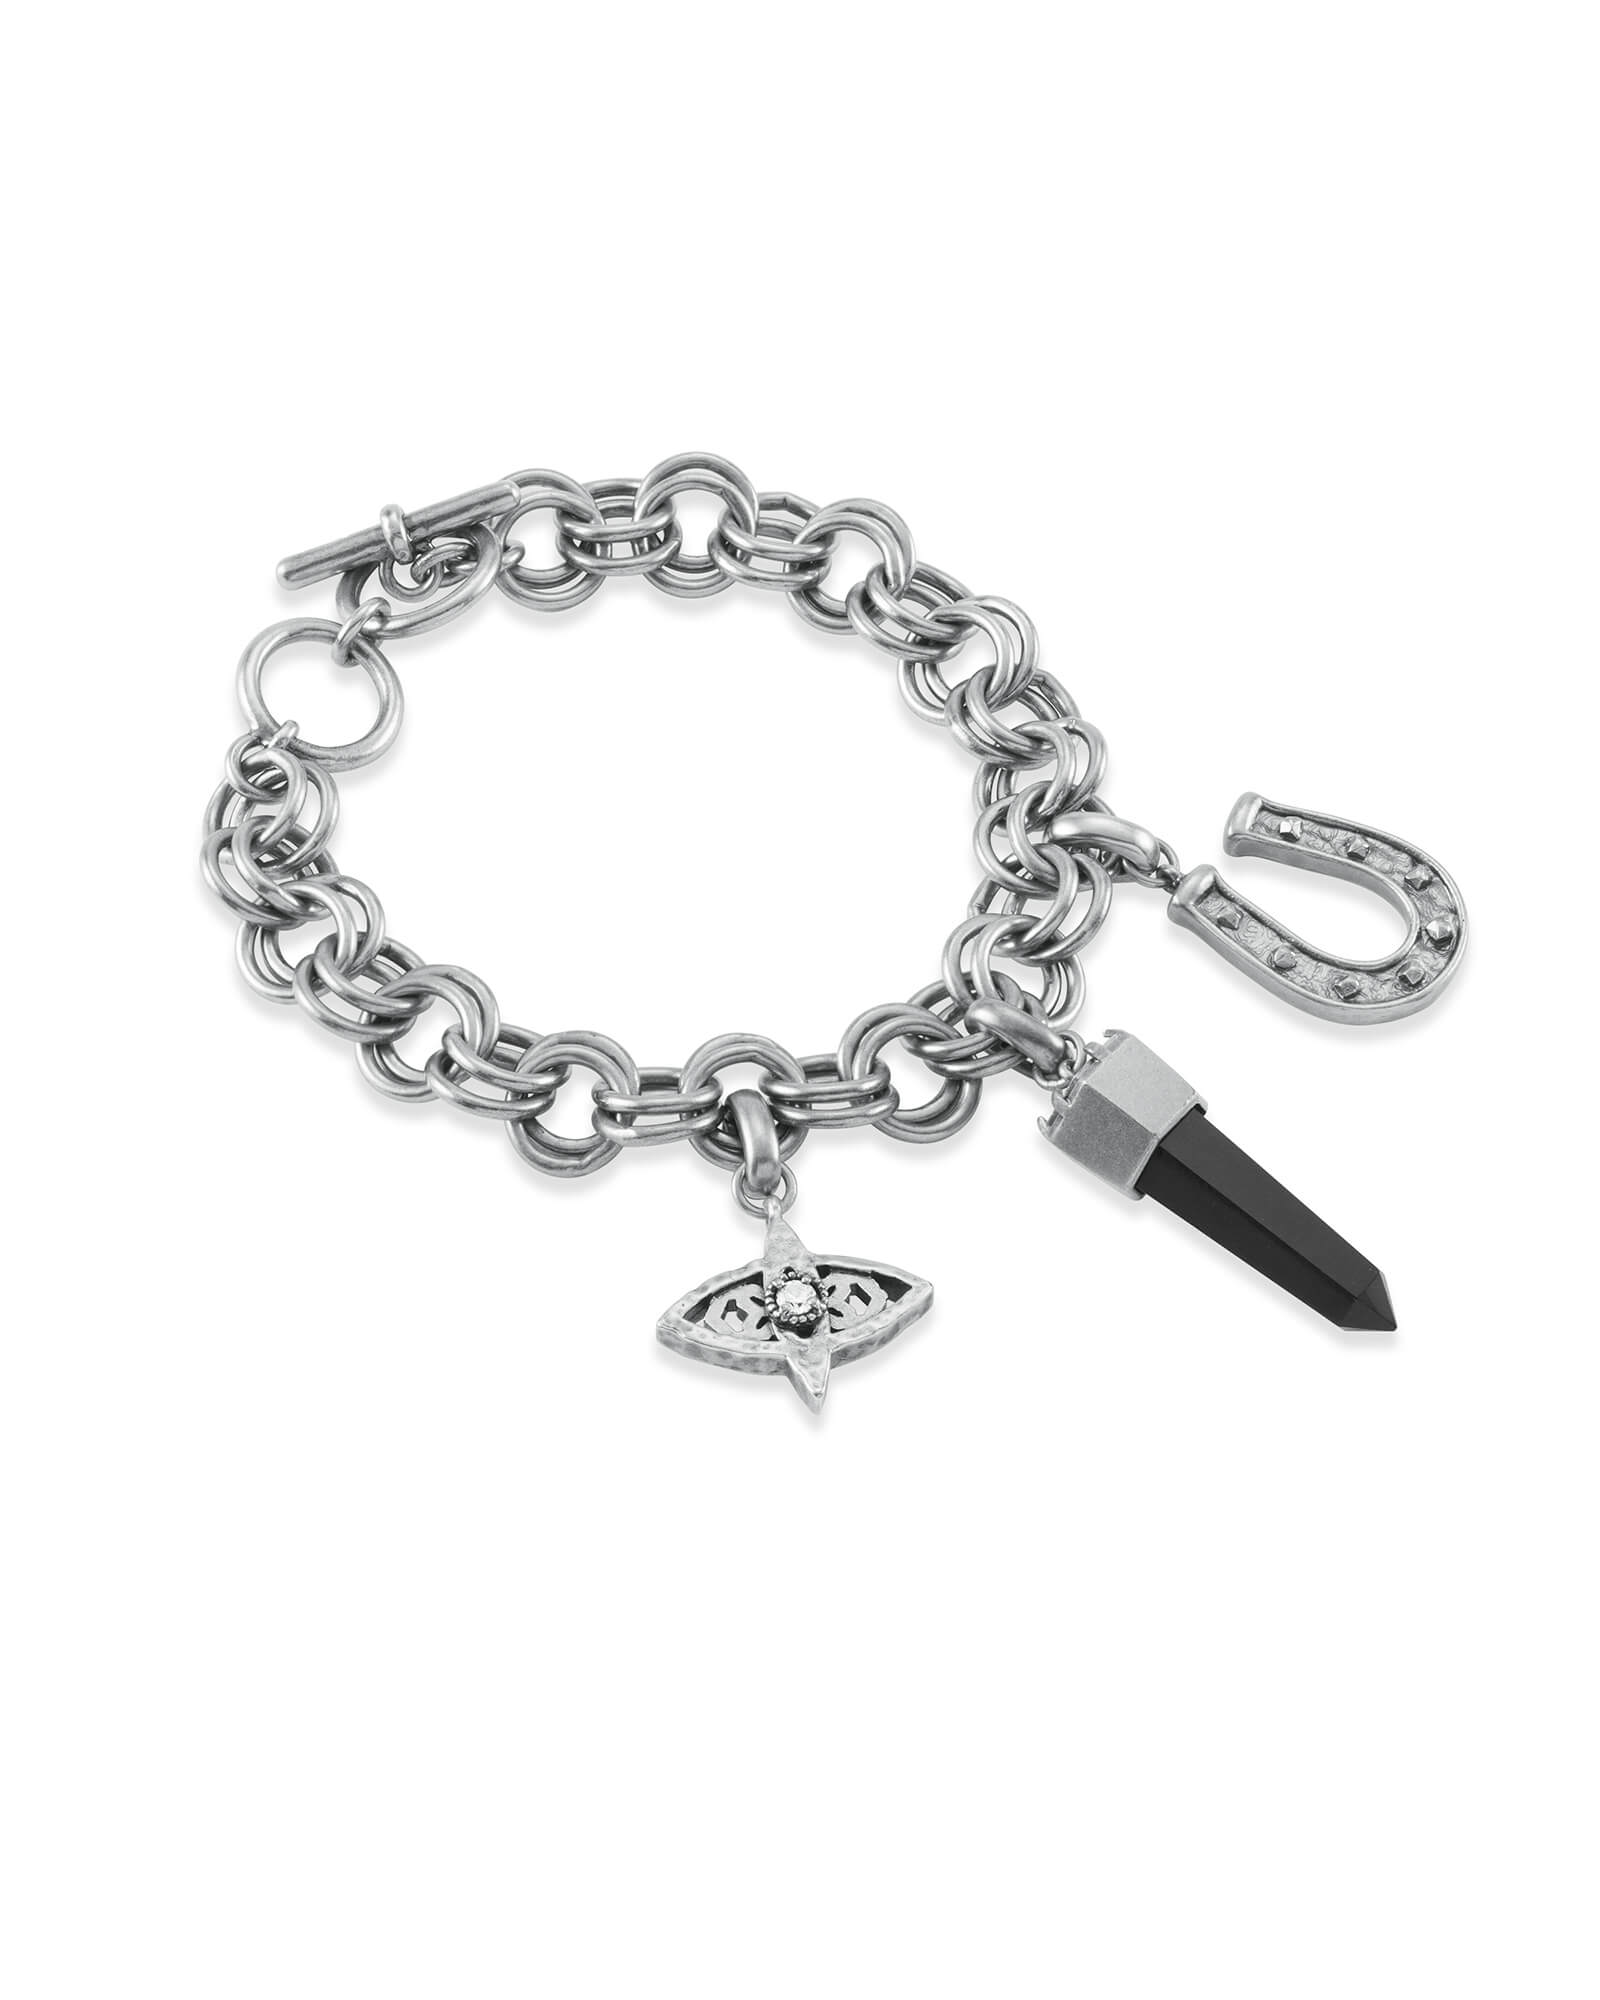 Protection Charm Bracelet Set in Vintage Silver